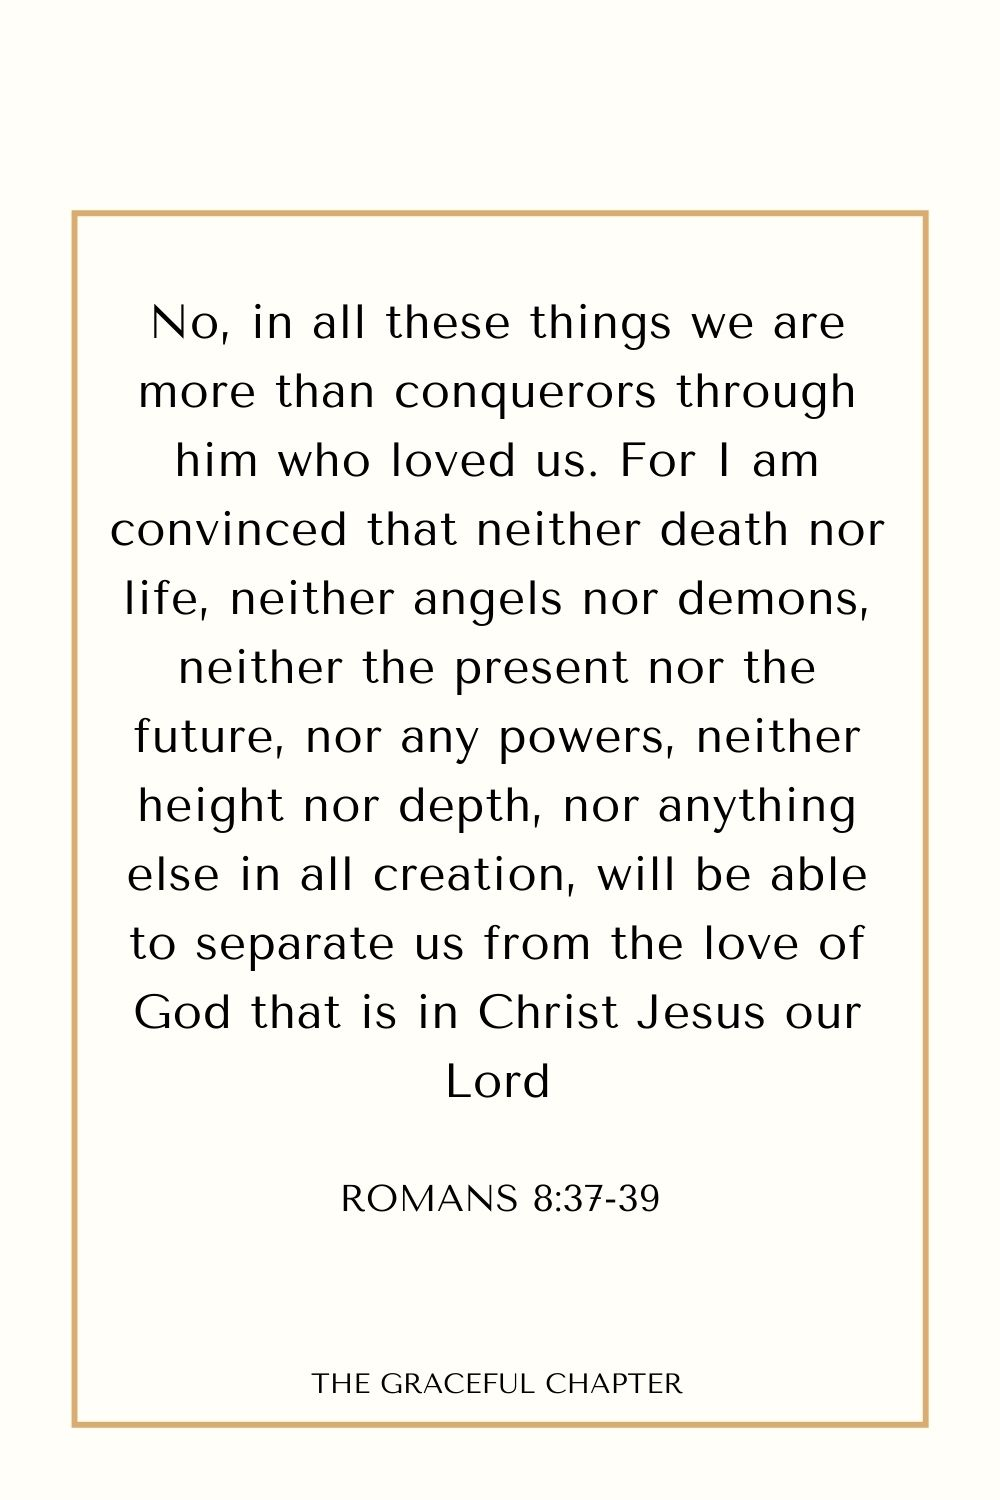 No, in all these things we are more than conquerors through him who loved us. For I am convinced that neither death nor life, neither angels nor demons, neither the present nor the future, nor any powers, neither height nor depth, nor anything else in all creation, will be able to separate us from the love of God that is in Christ Jesus our Lord Romans 8:37-39